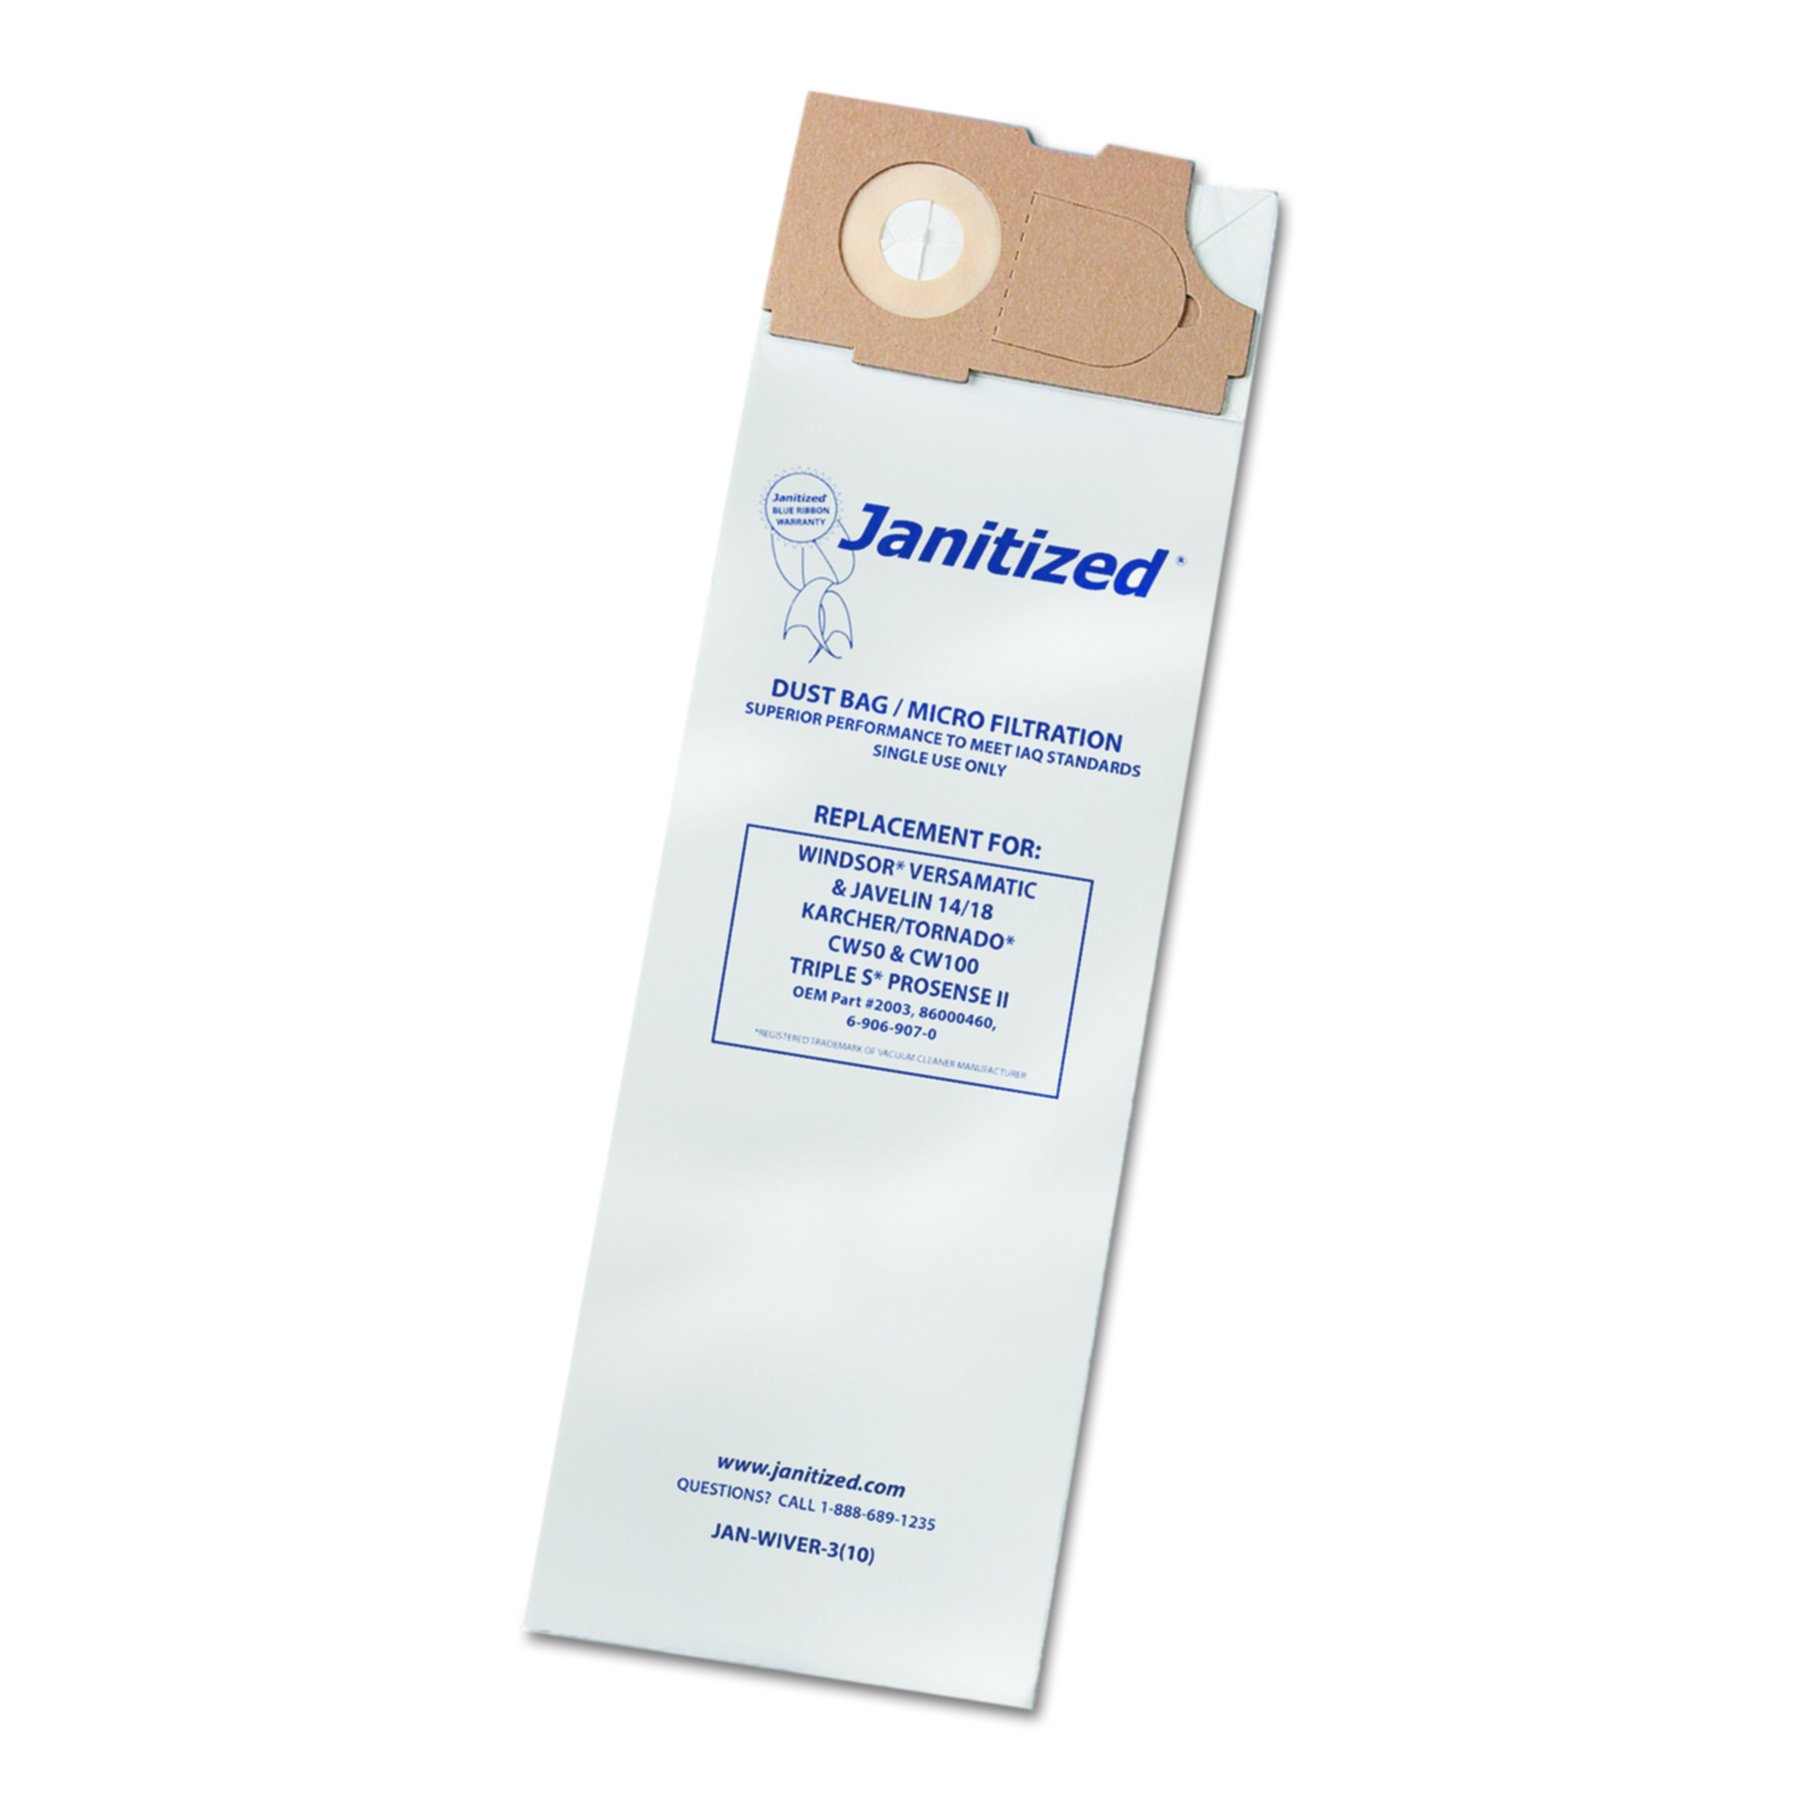 Janitized JAN-Wiver-3 Windsor Versamatic 3 Ply Bag (10 per Pack, Case of 10 Packs) by Janitized